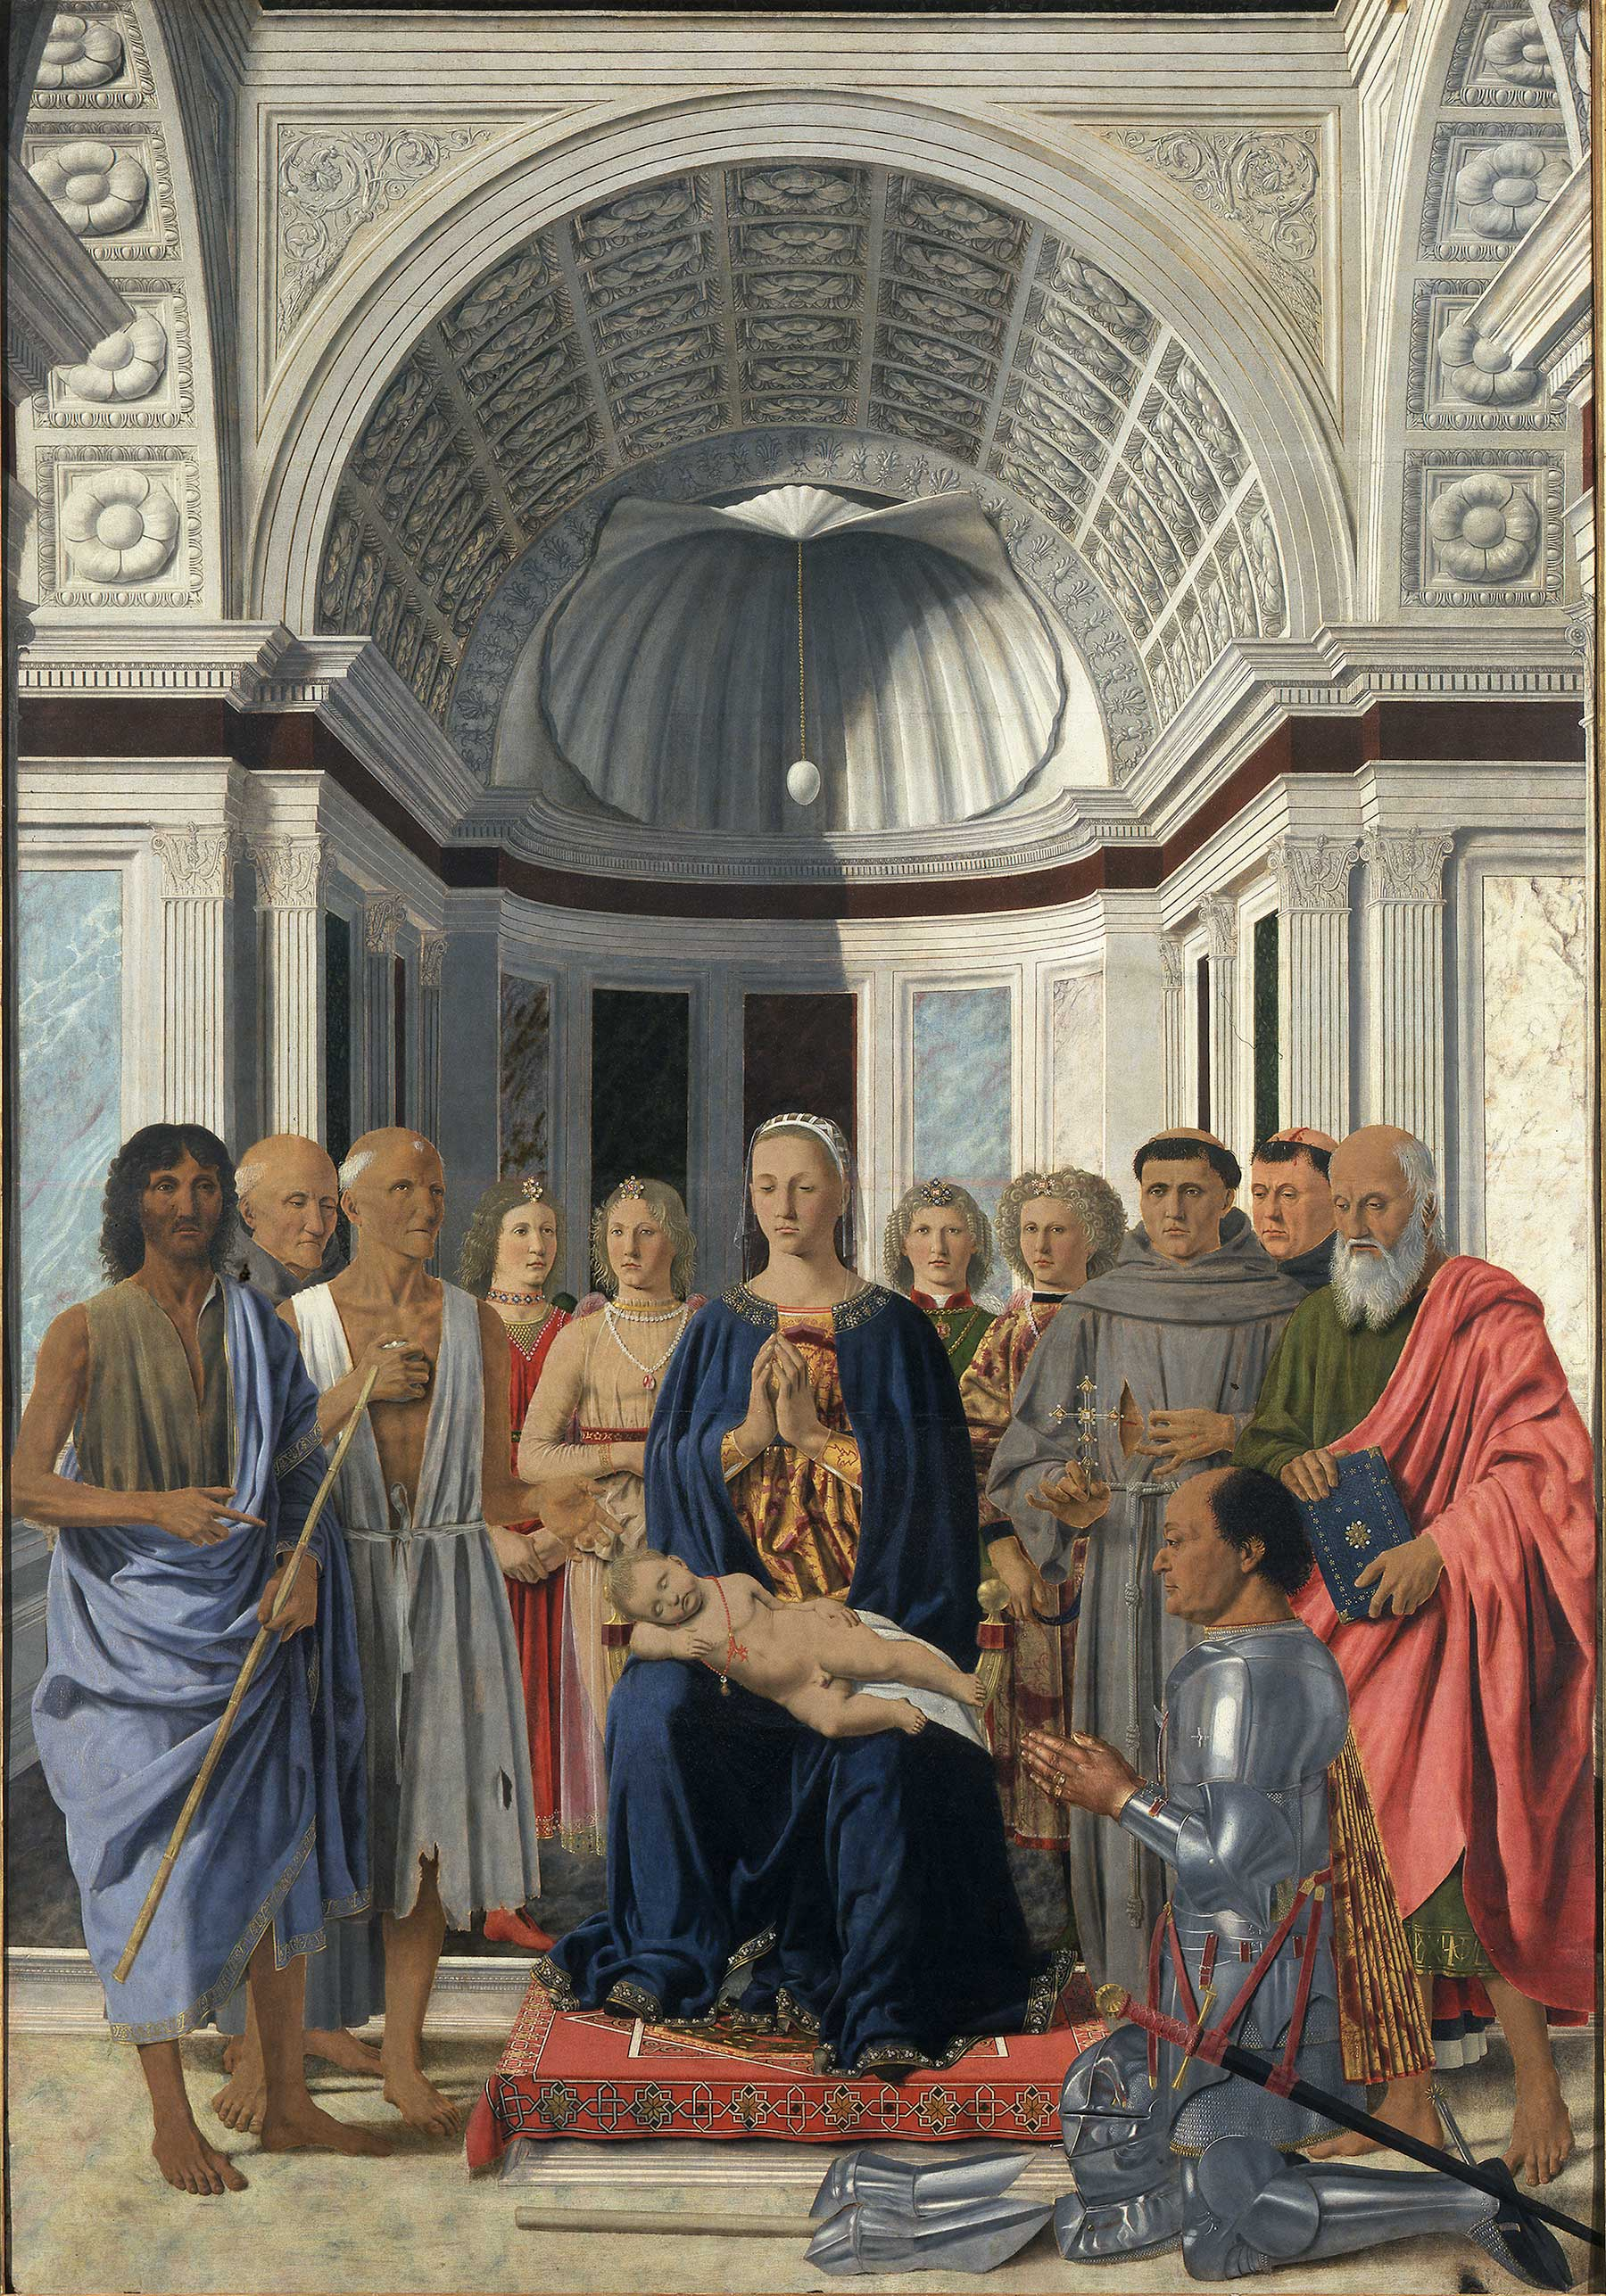 The Virgin with Child, Angels and Saints, 1474 — Piero della Francesca